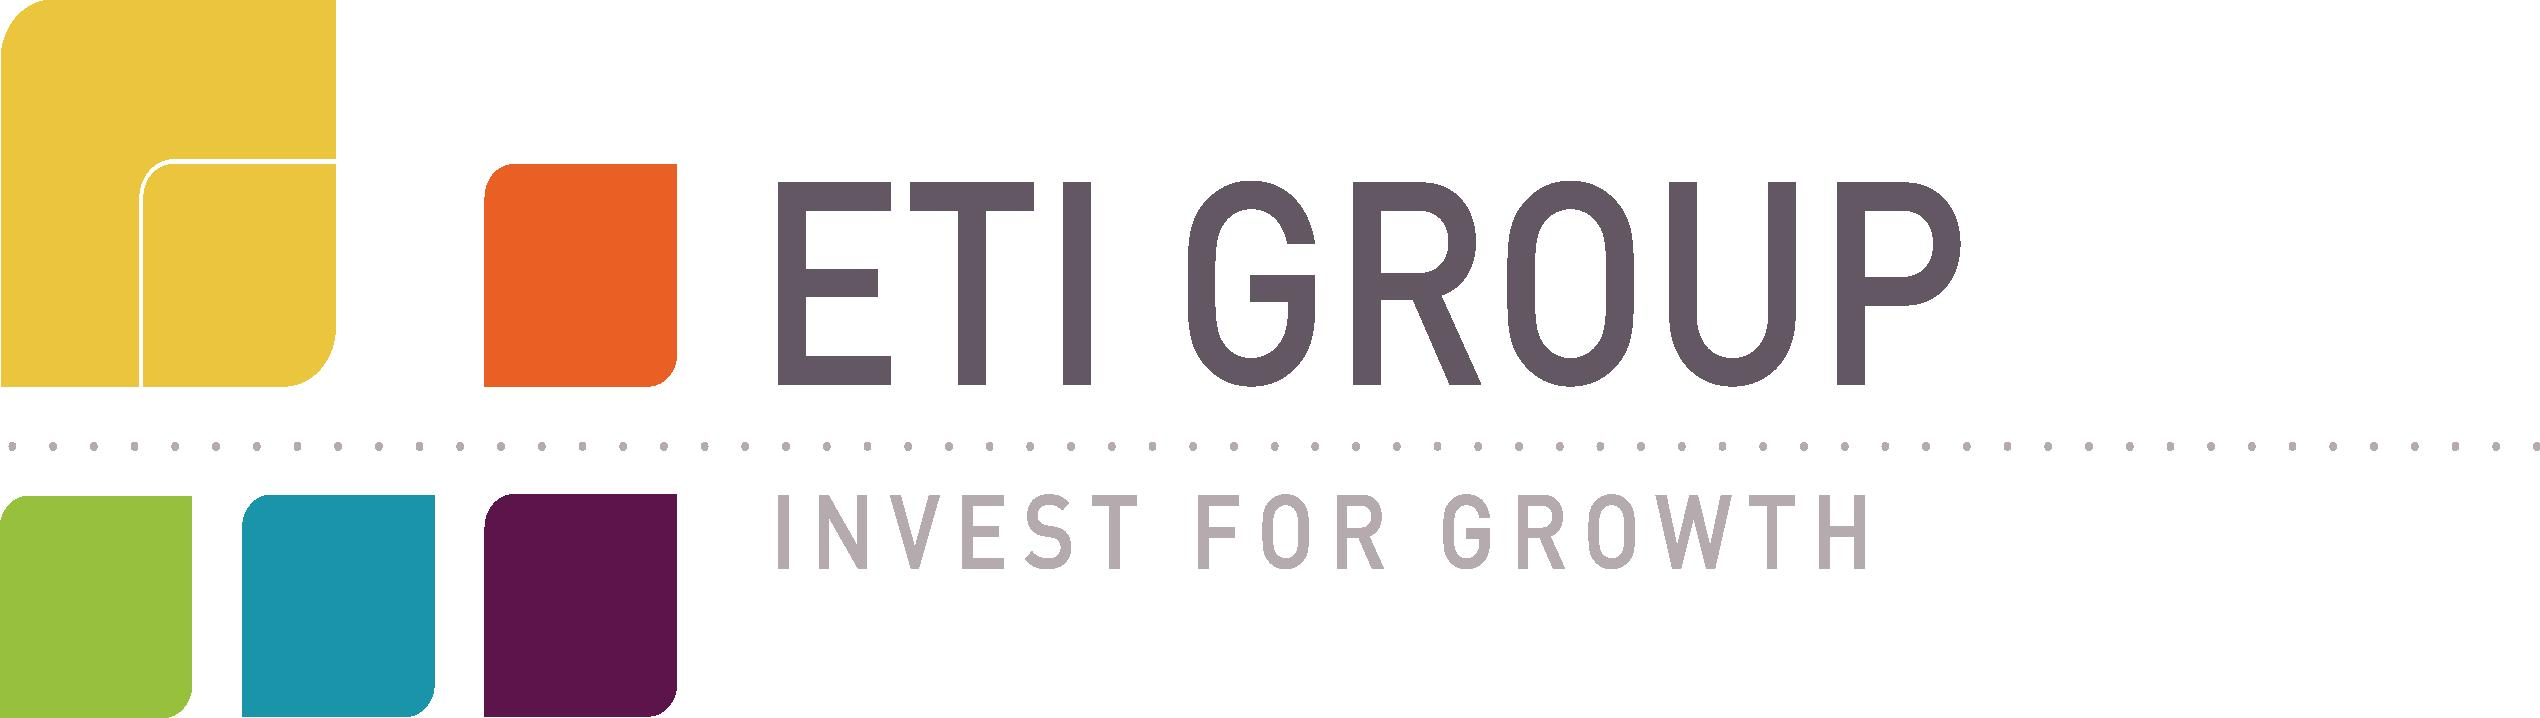 Etigroup